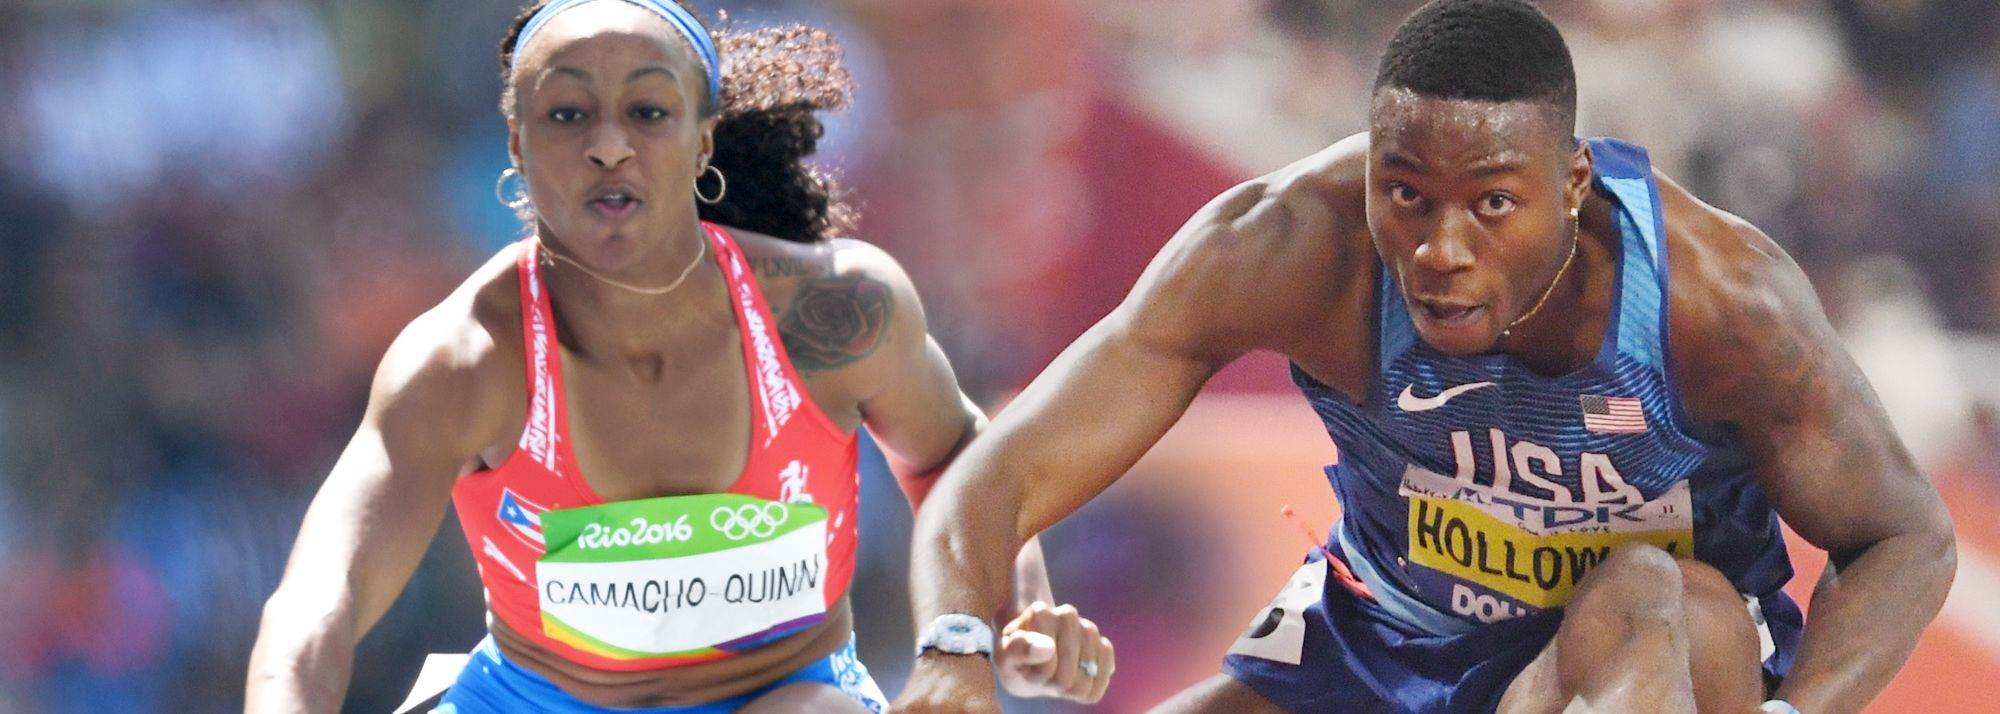 Expected highlights in the women's and men's sprint hurdles.